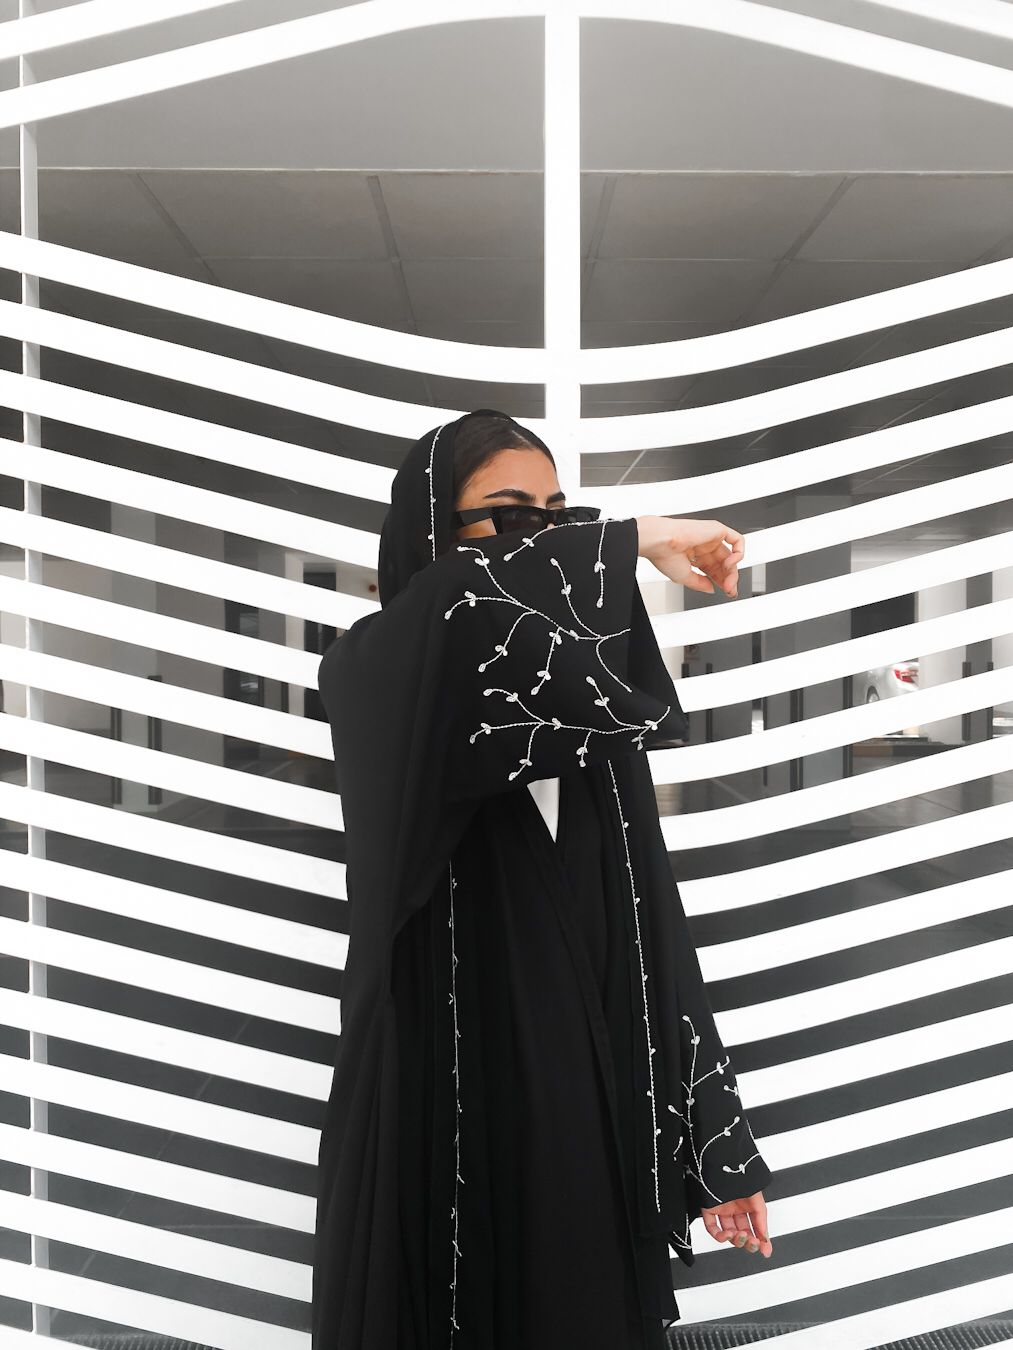 Black abaya with silver embroidery